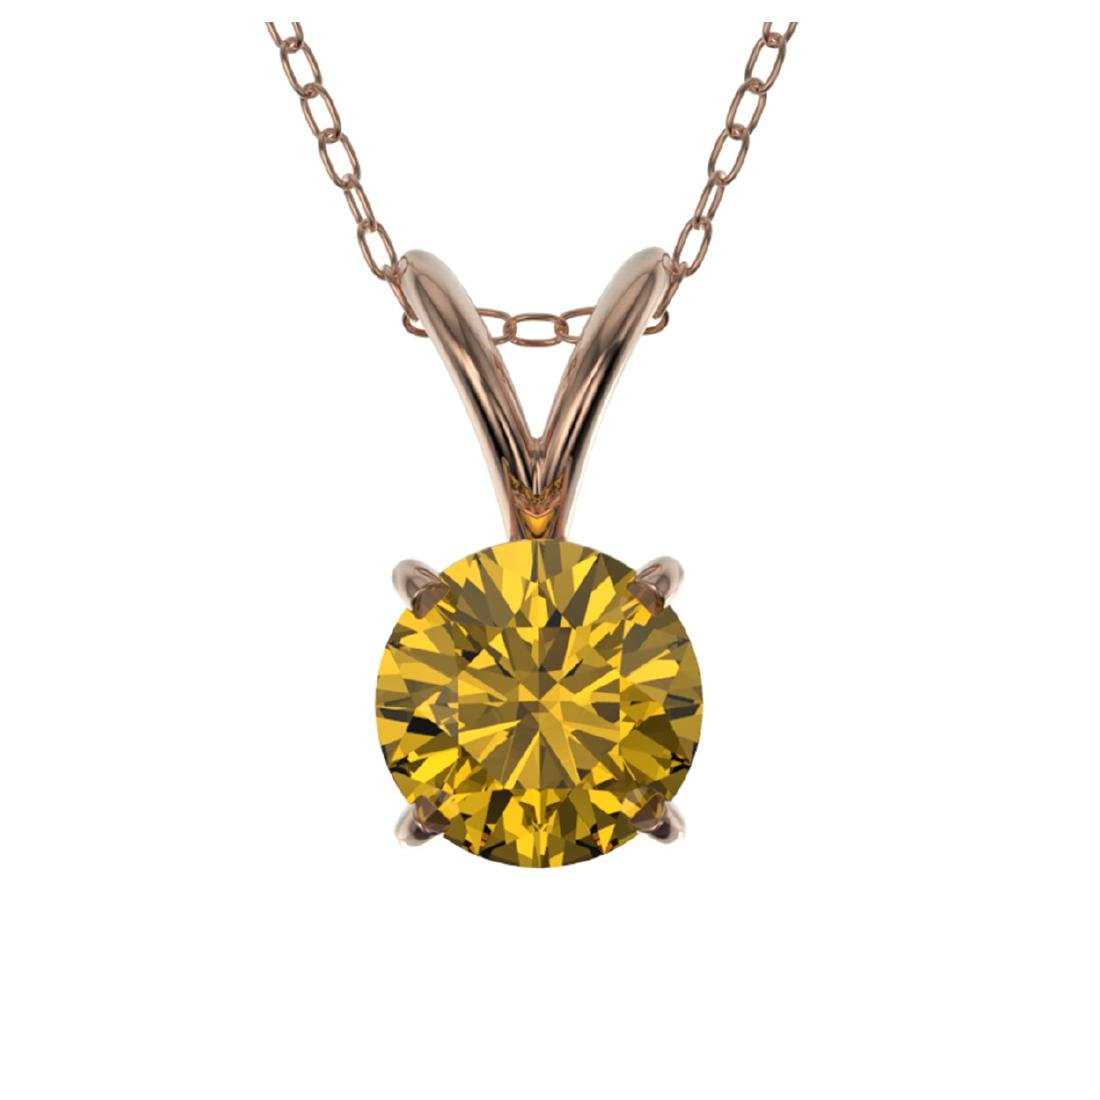 0.53 CTW Intense Yellow SI Diamond Solitaire Necklace